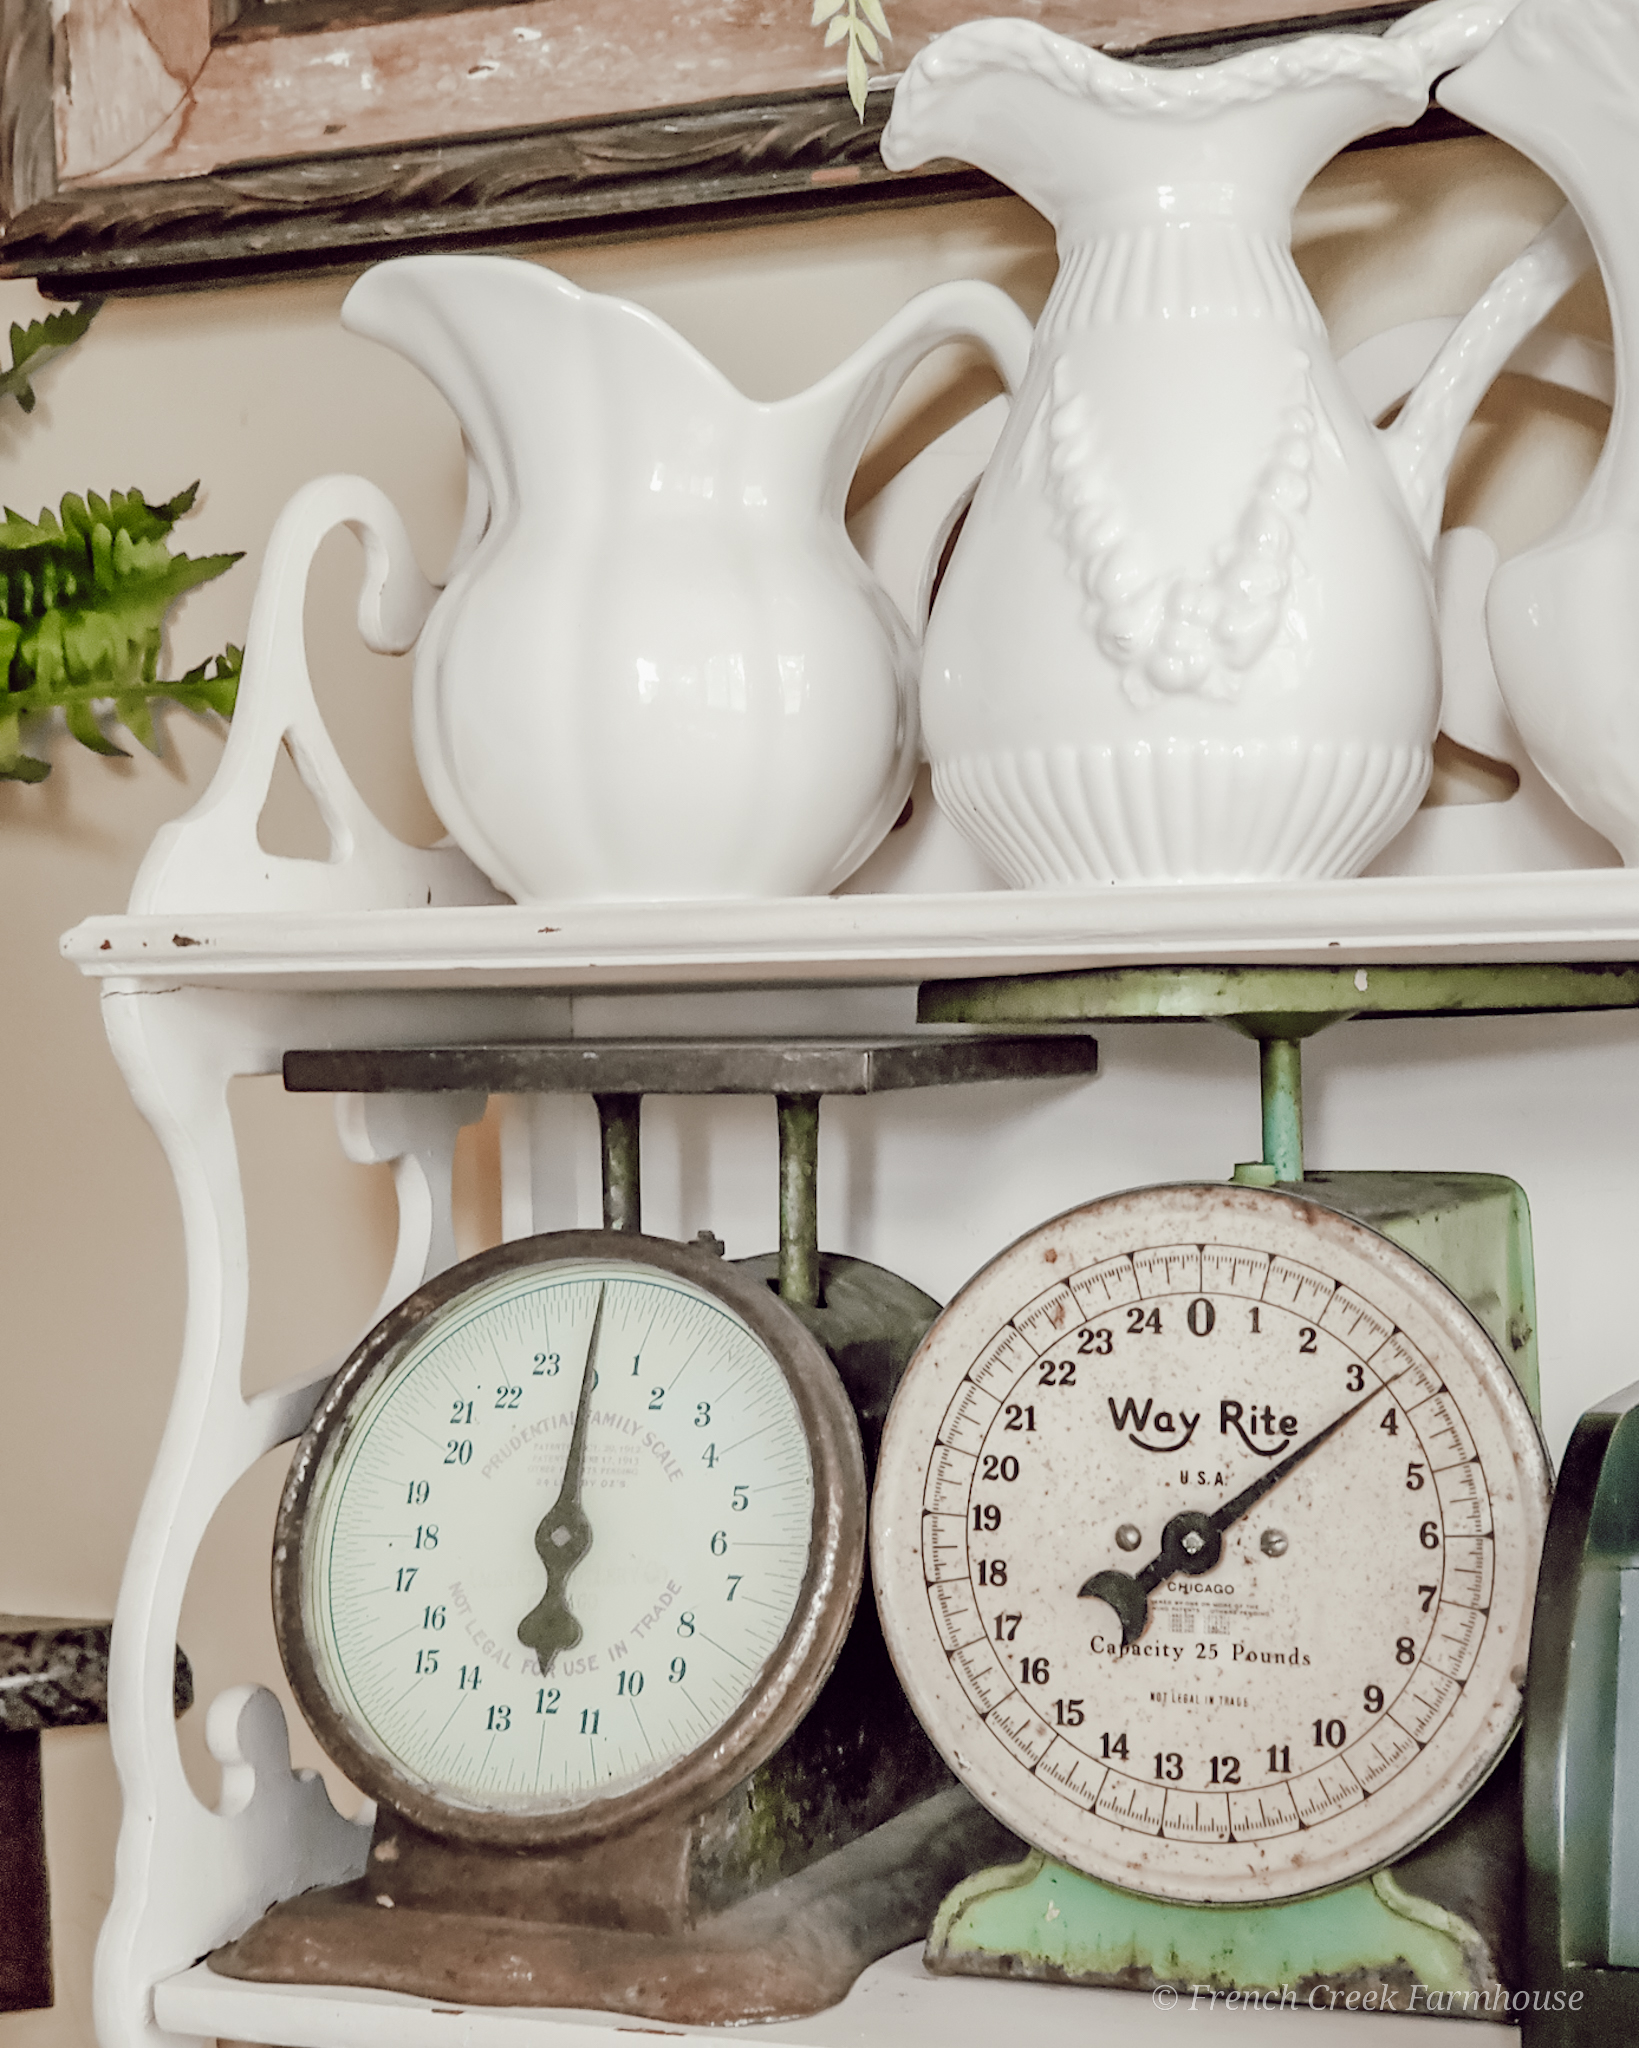 Vintage scales make beautiful kitchen or dining decor